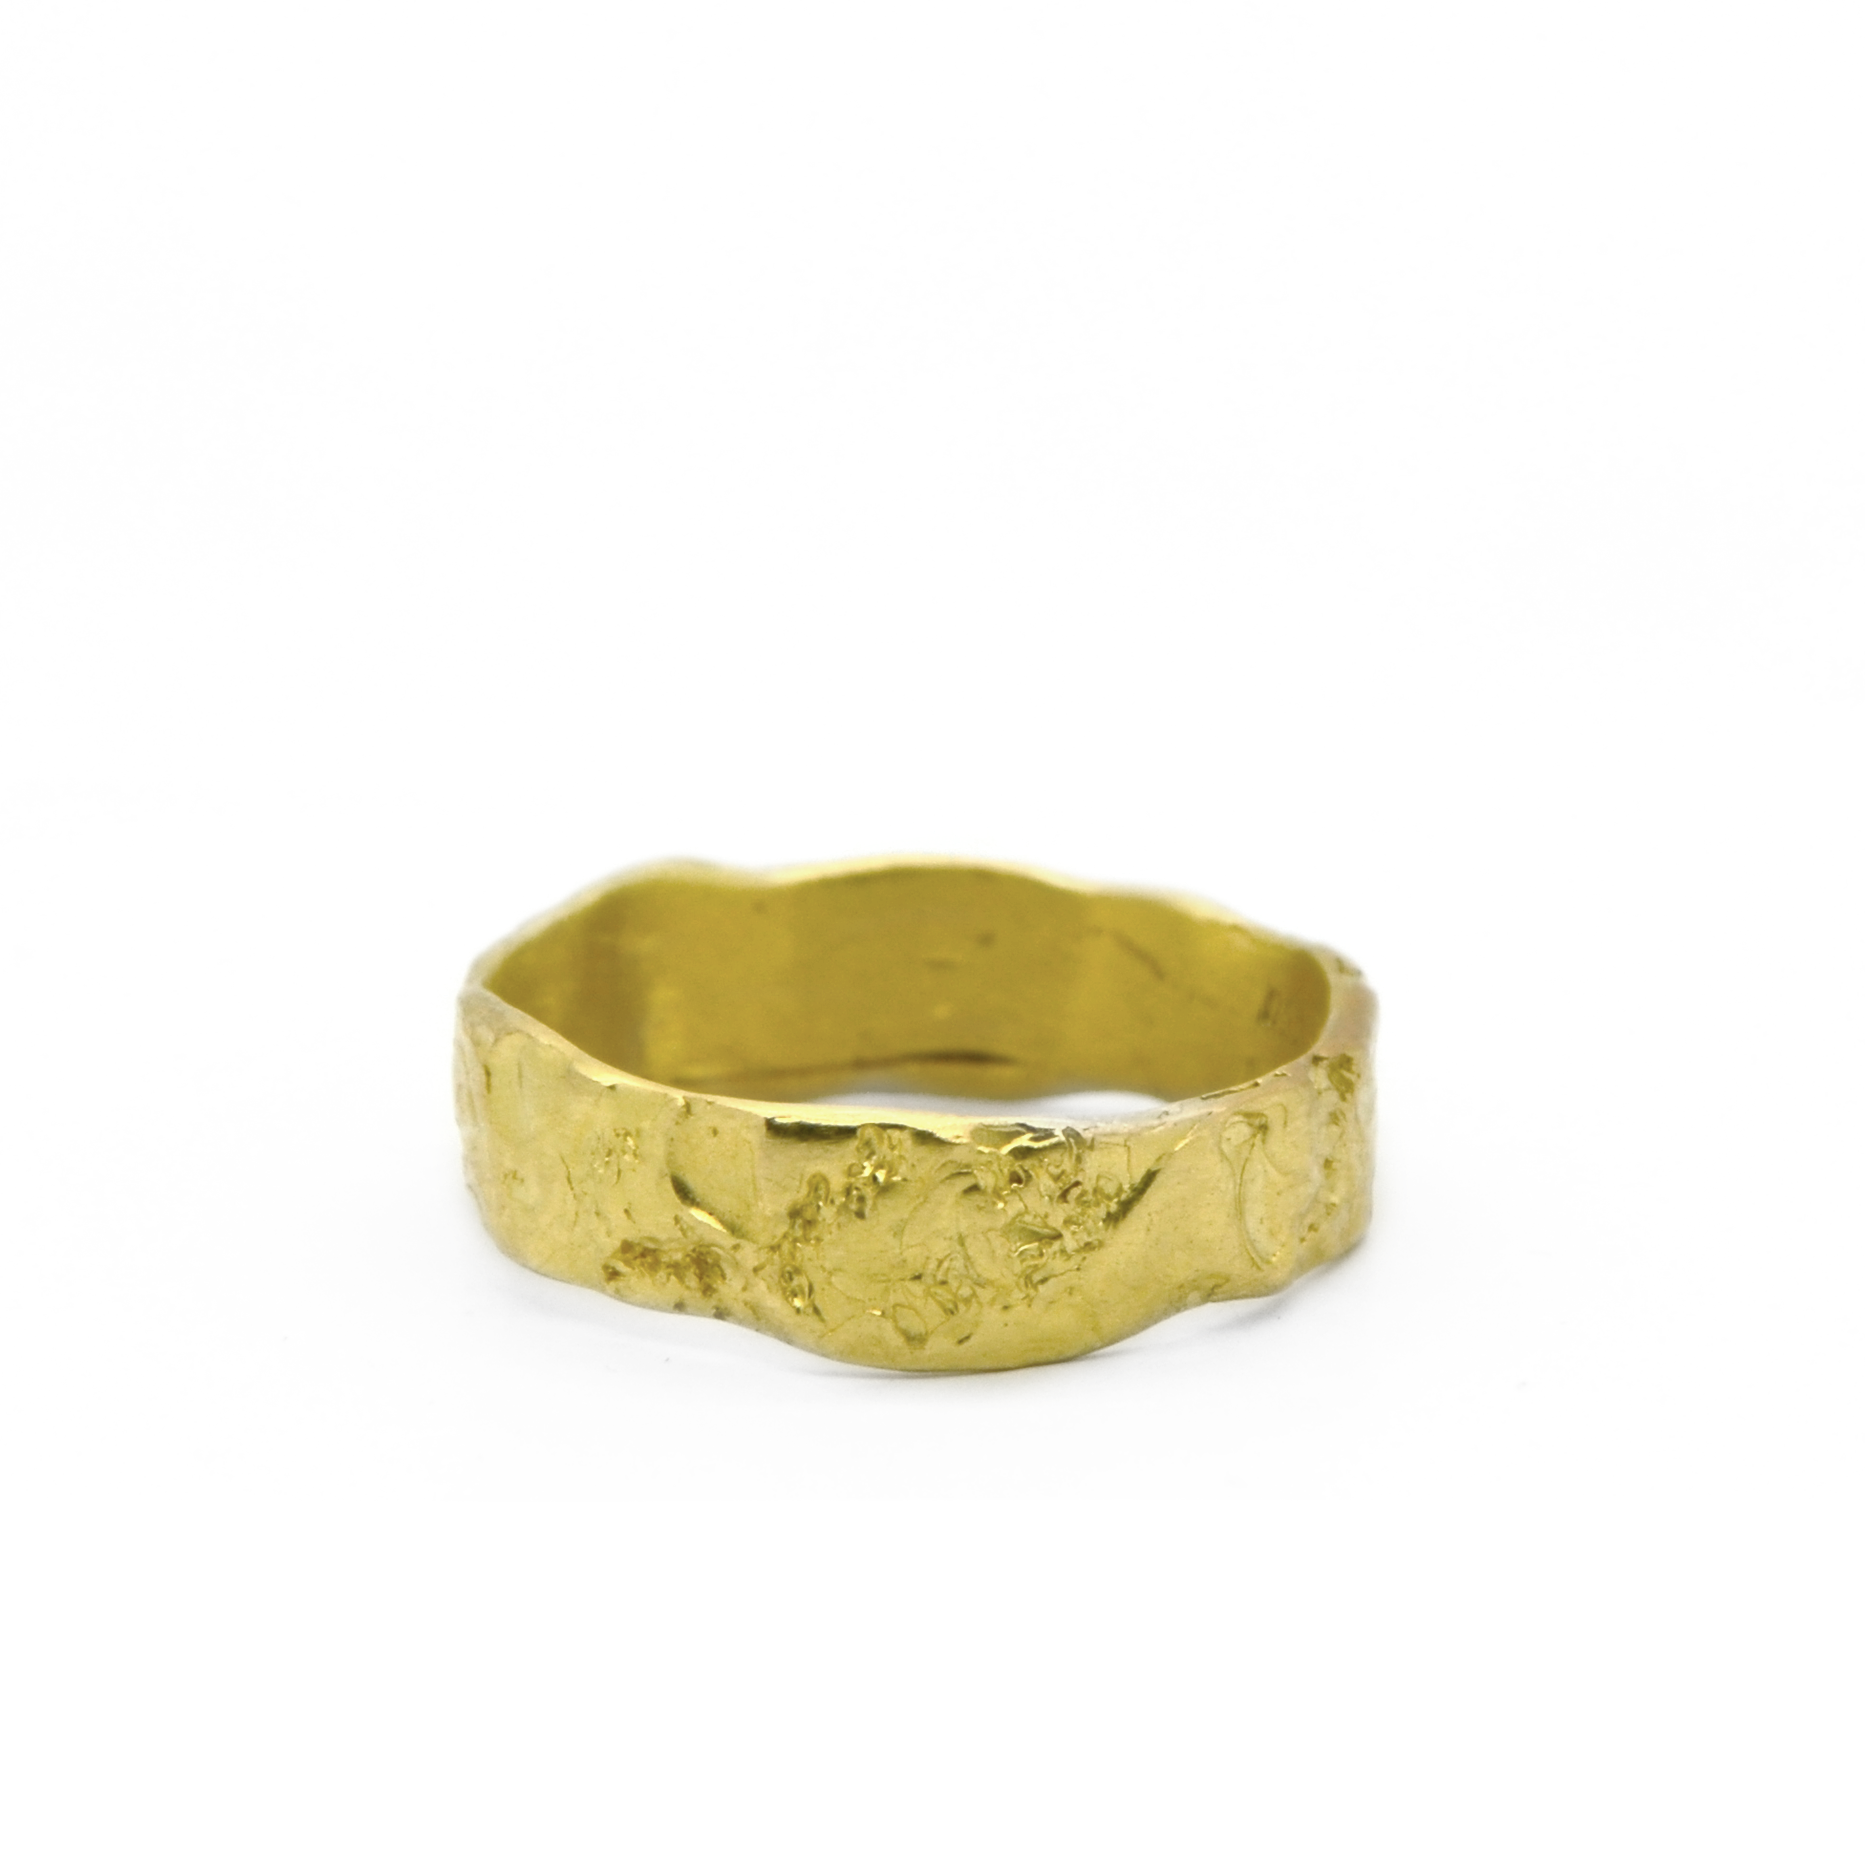 ring08.png